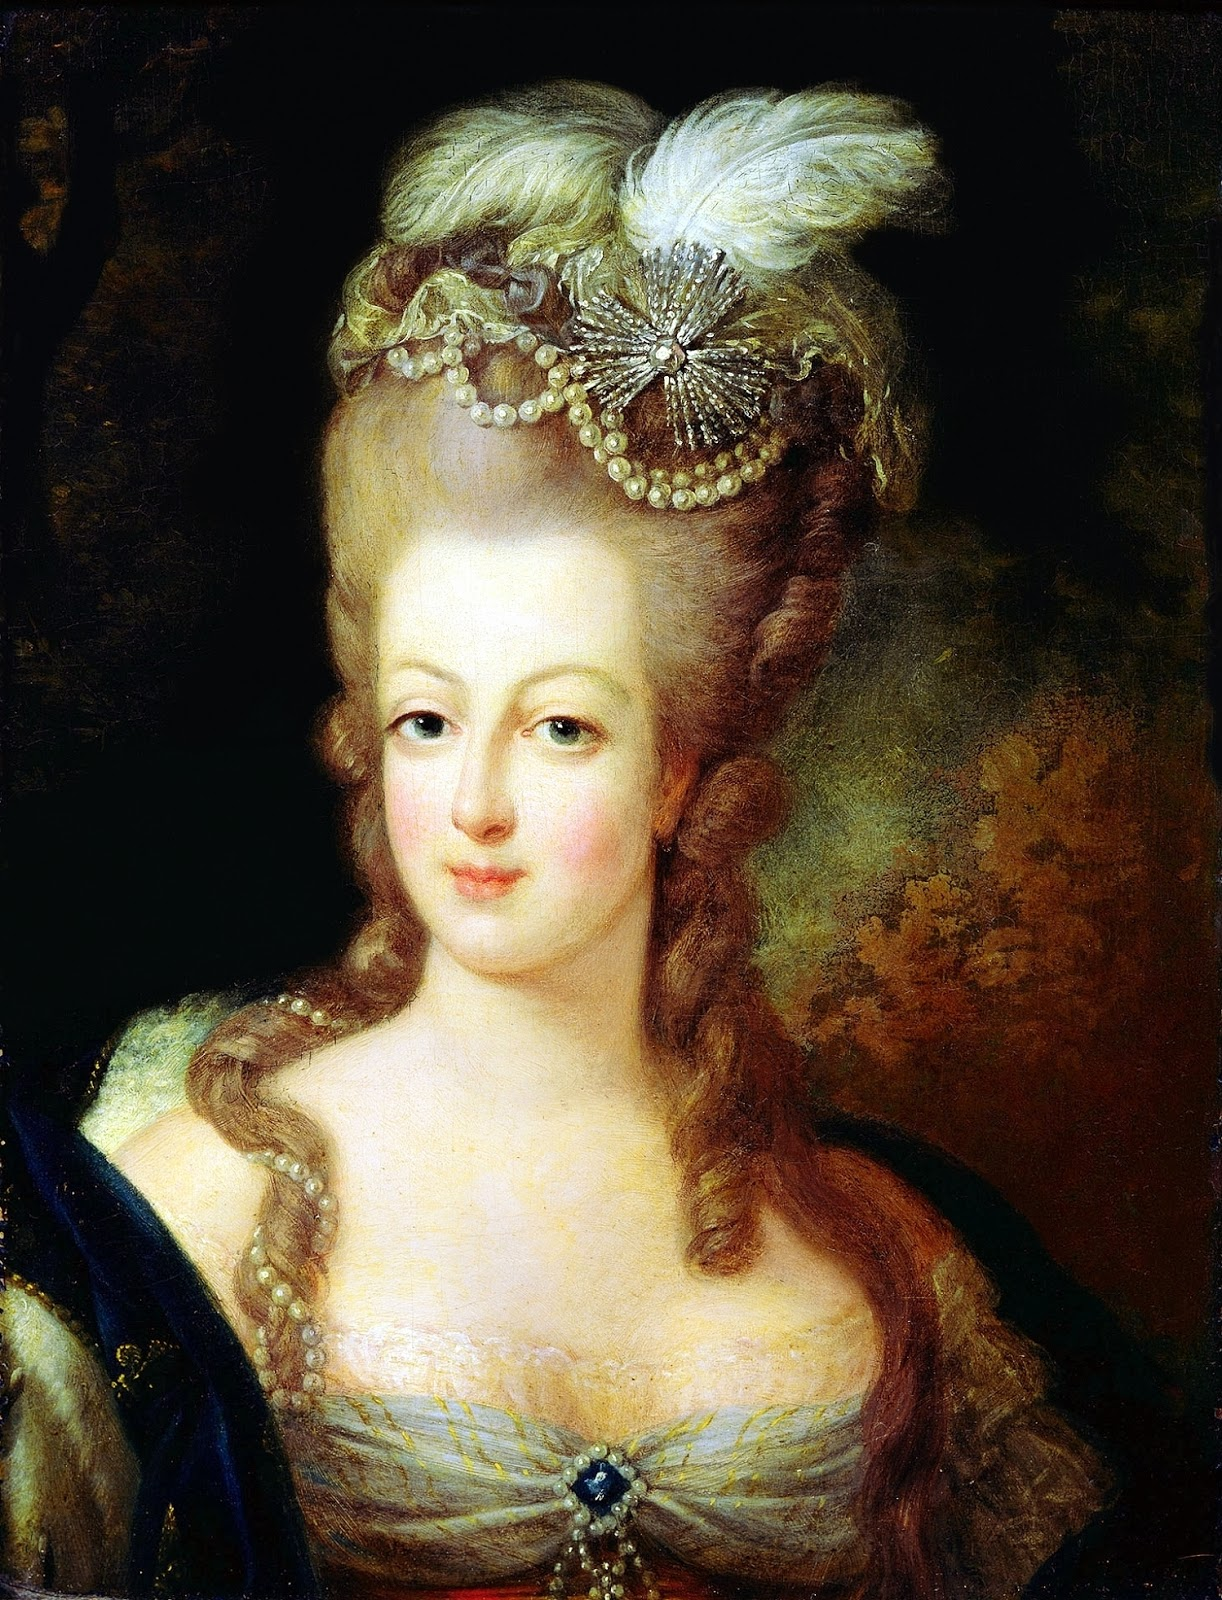 {{Information |Description={{en|1=Portrait of Queen Marie Antoinette of France, 1775.}} |Source=Scan |Author=Jean-Baptiste Gautier Dagoty (1740-1786) |Date=ca. 1775 |Permission= |other_versions=http://commons.wikimedia.org/wiki/File:Marie-Antoinette,_1775